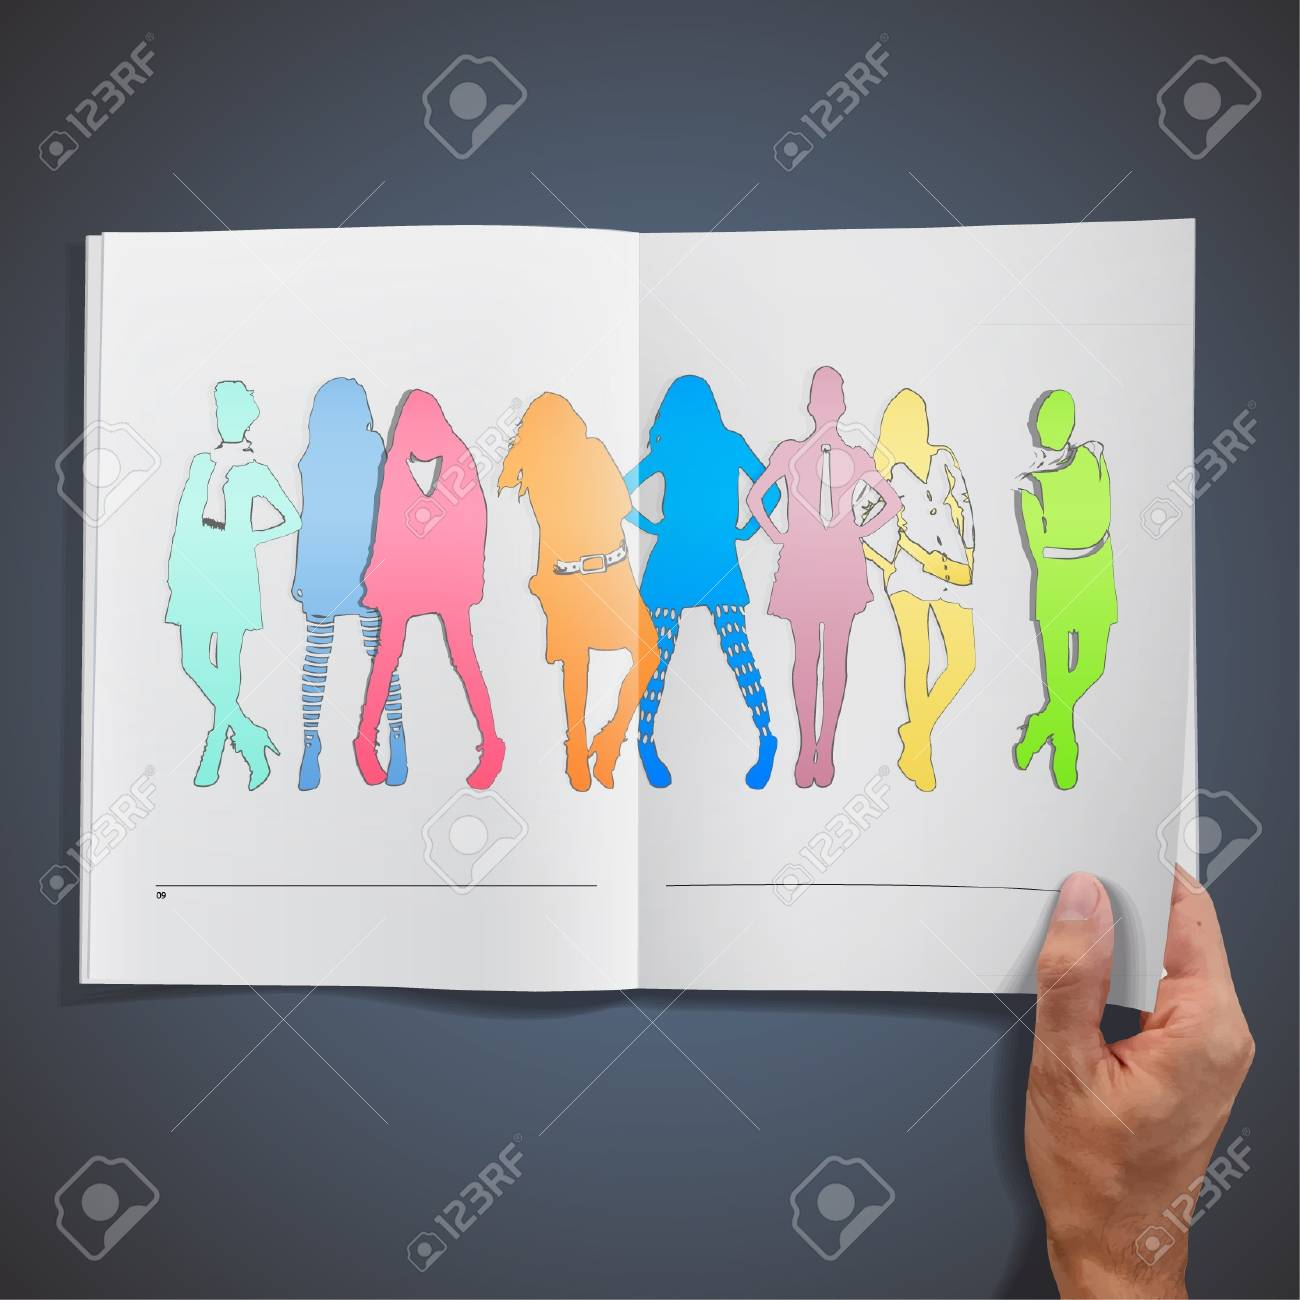 Colorful models inside a book design Stock Vector - 17409219